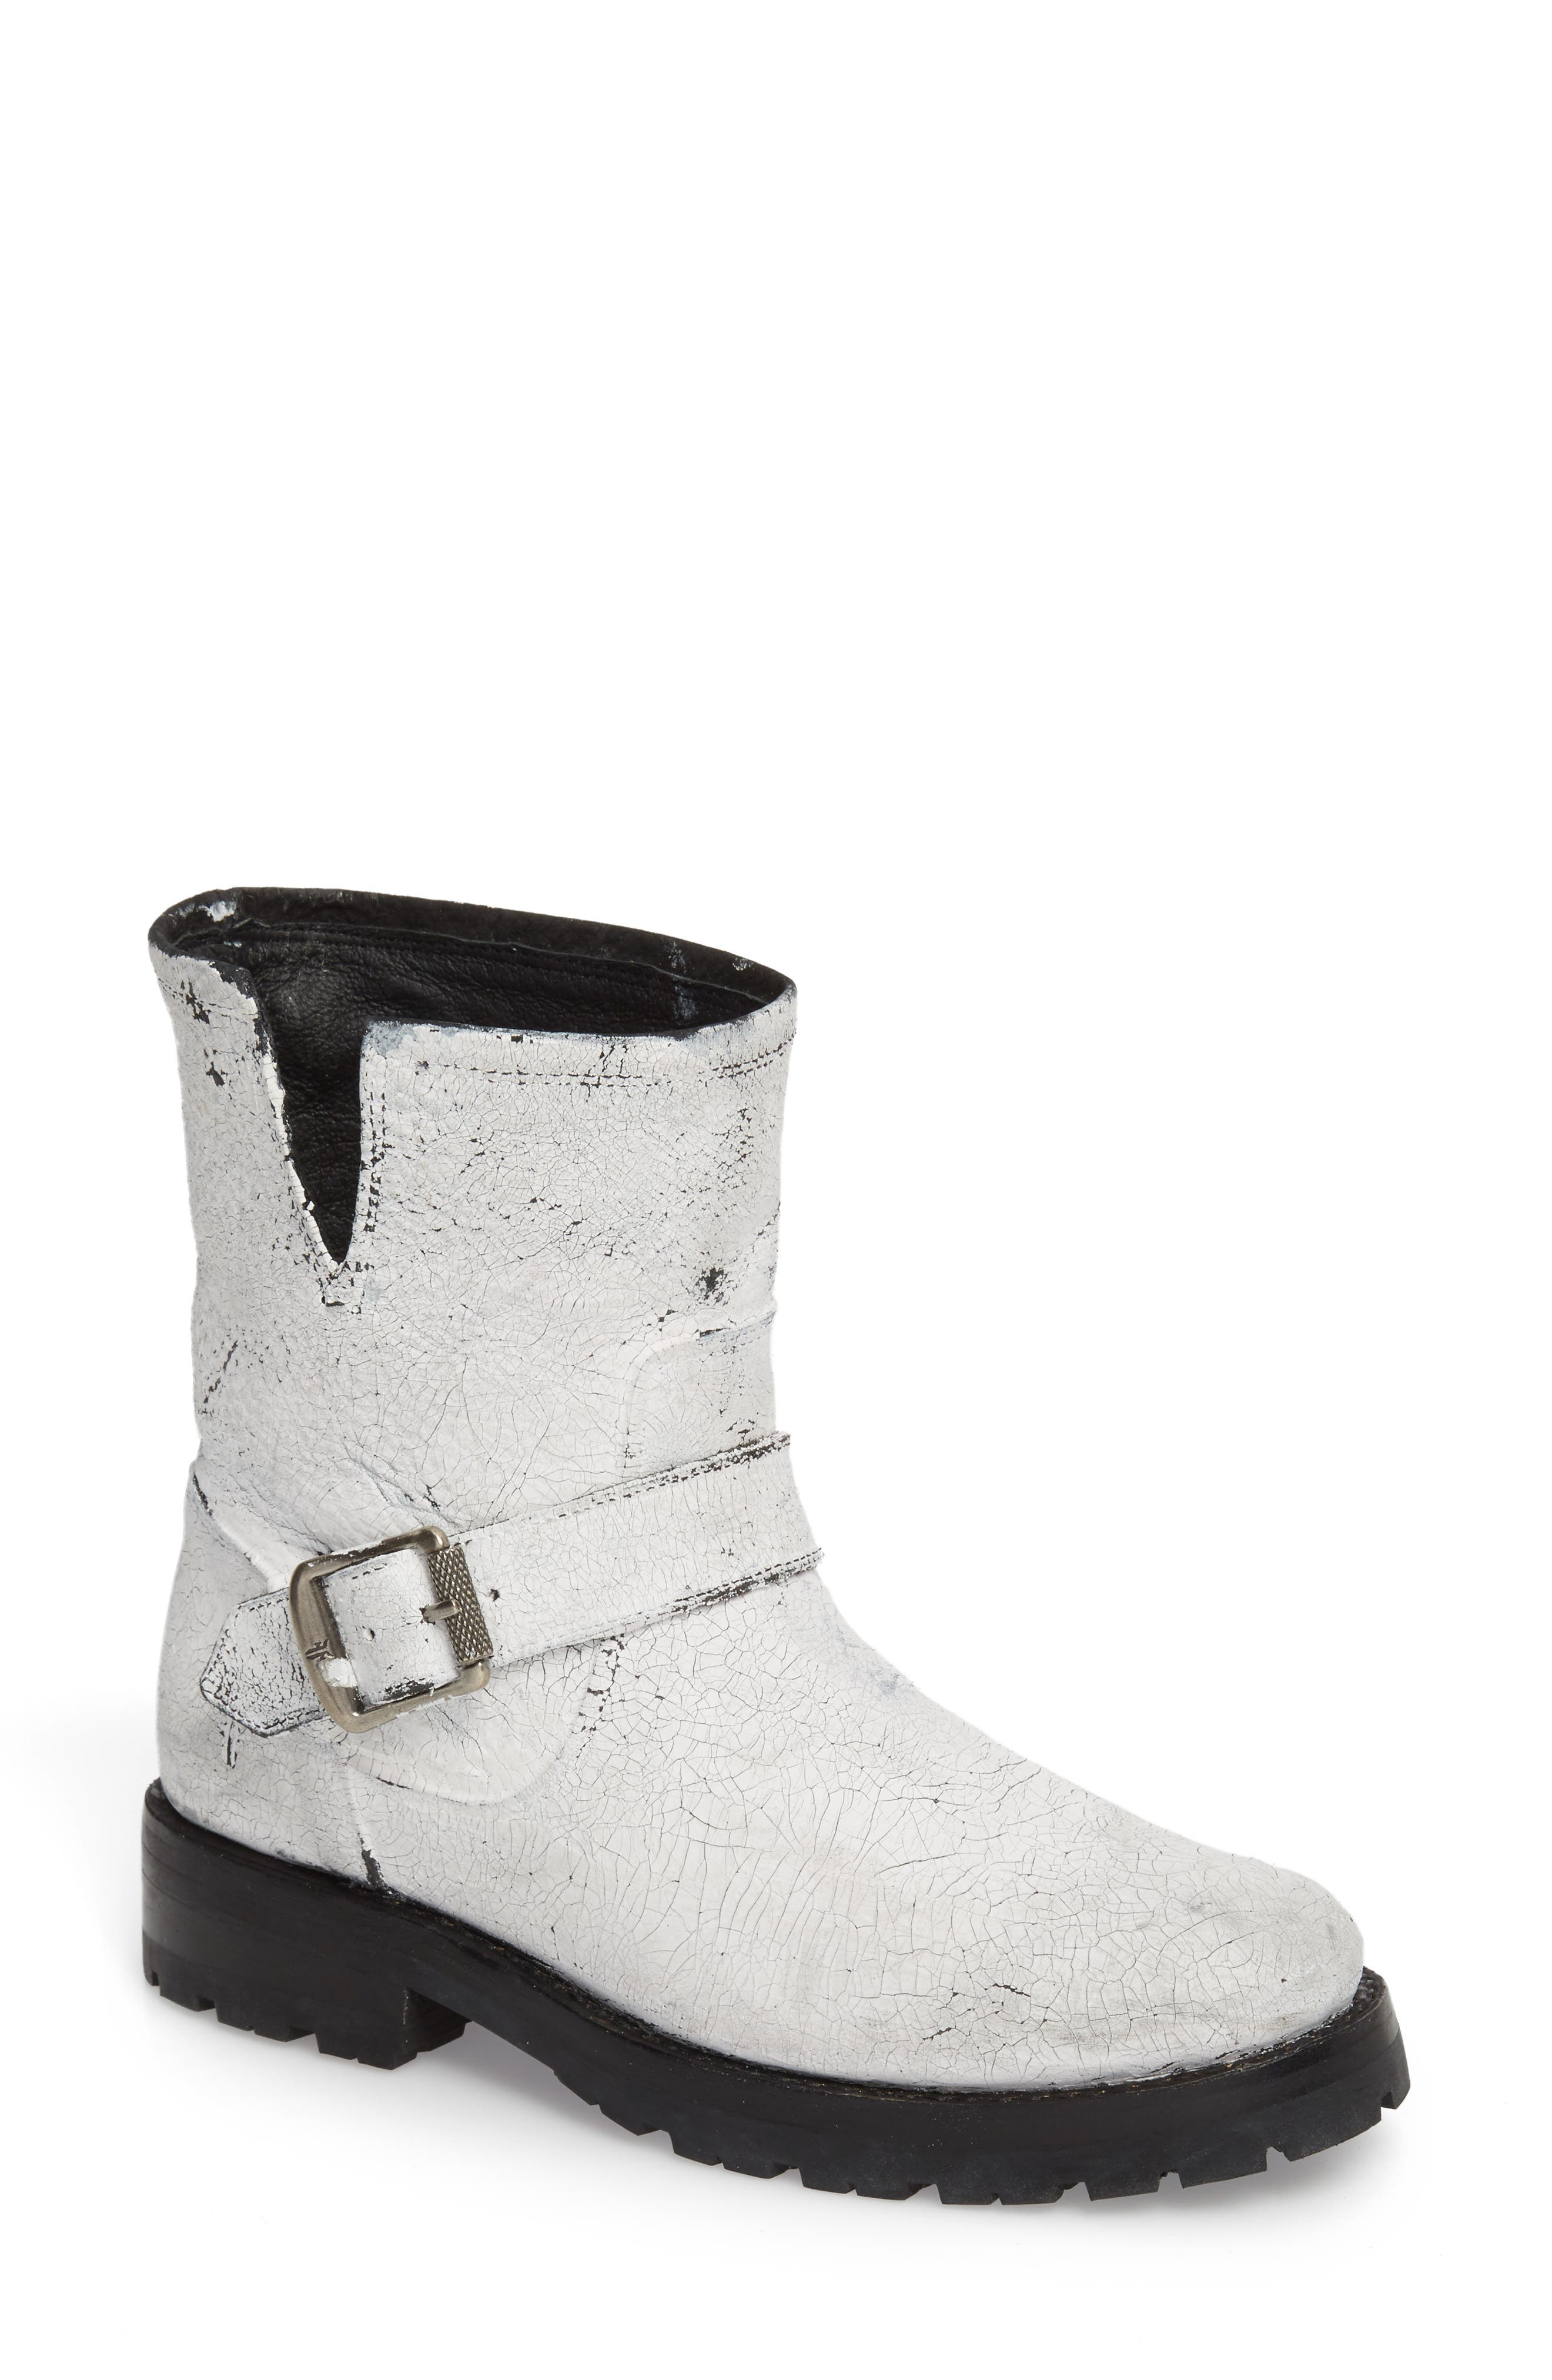 FRYE Natalie Engineer Boot, Main, color, WHITE LEATHER